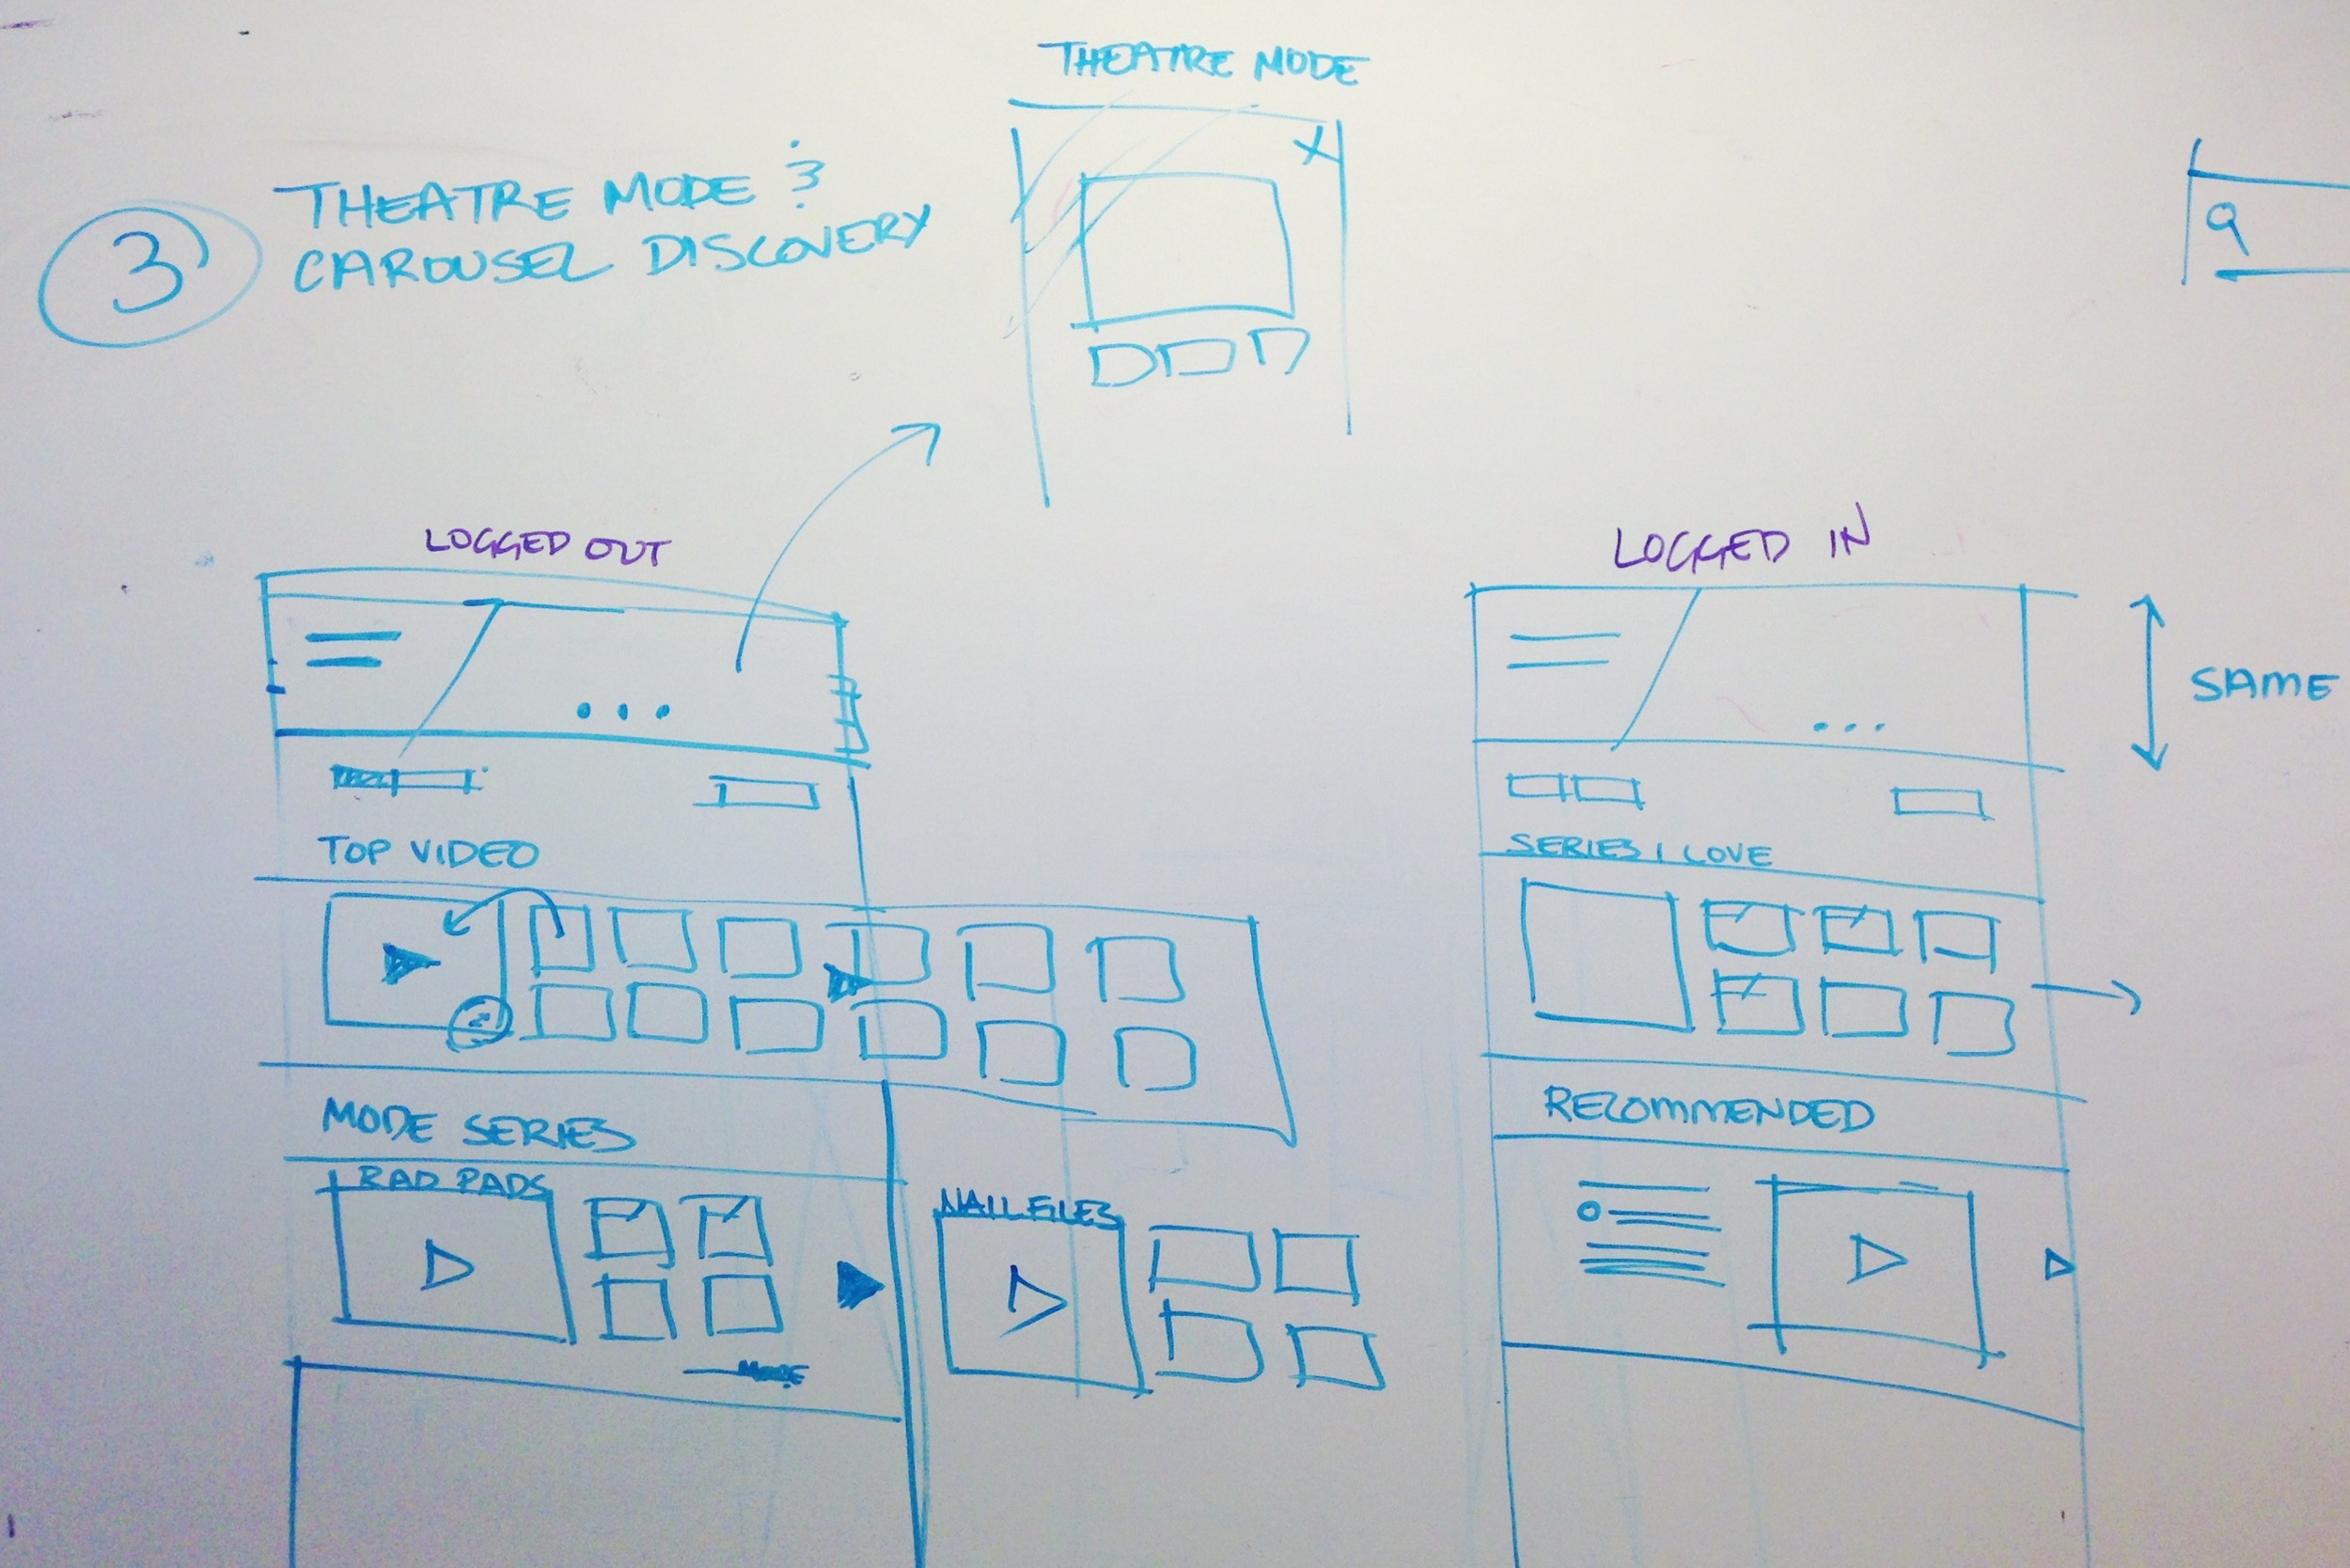 UX wireframe sketches in notebook.